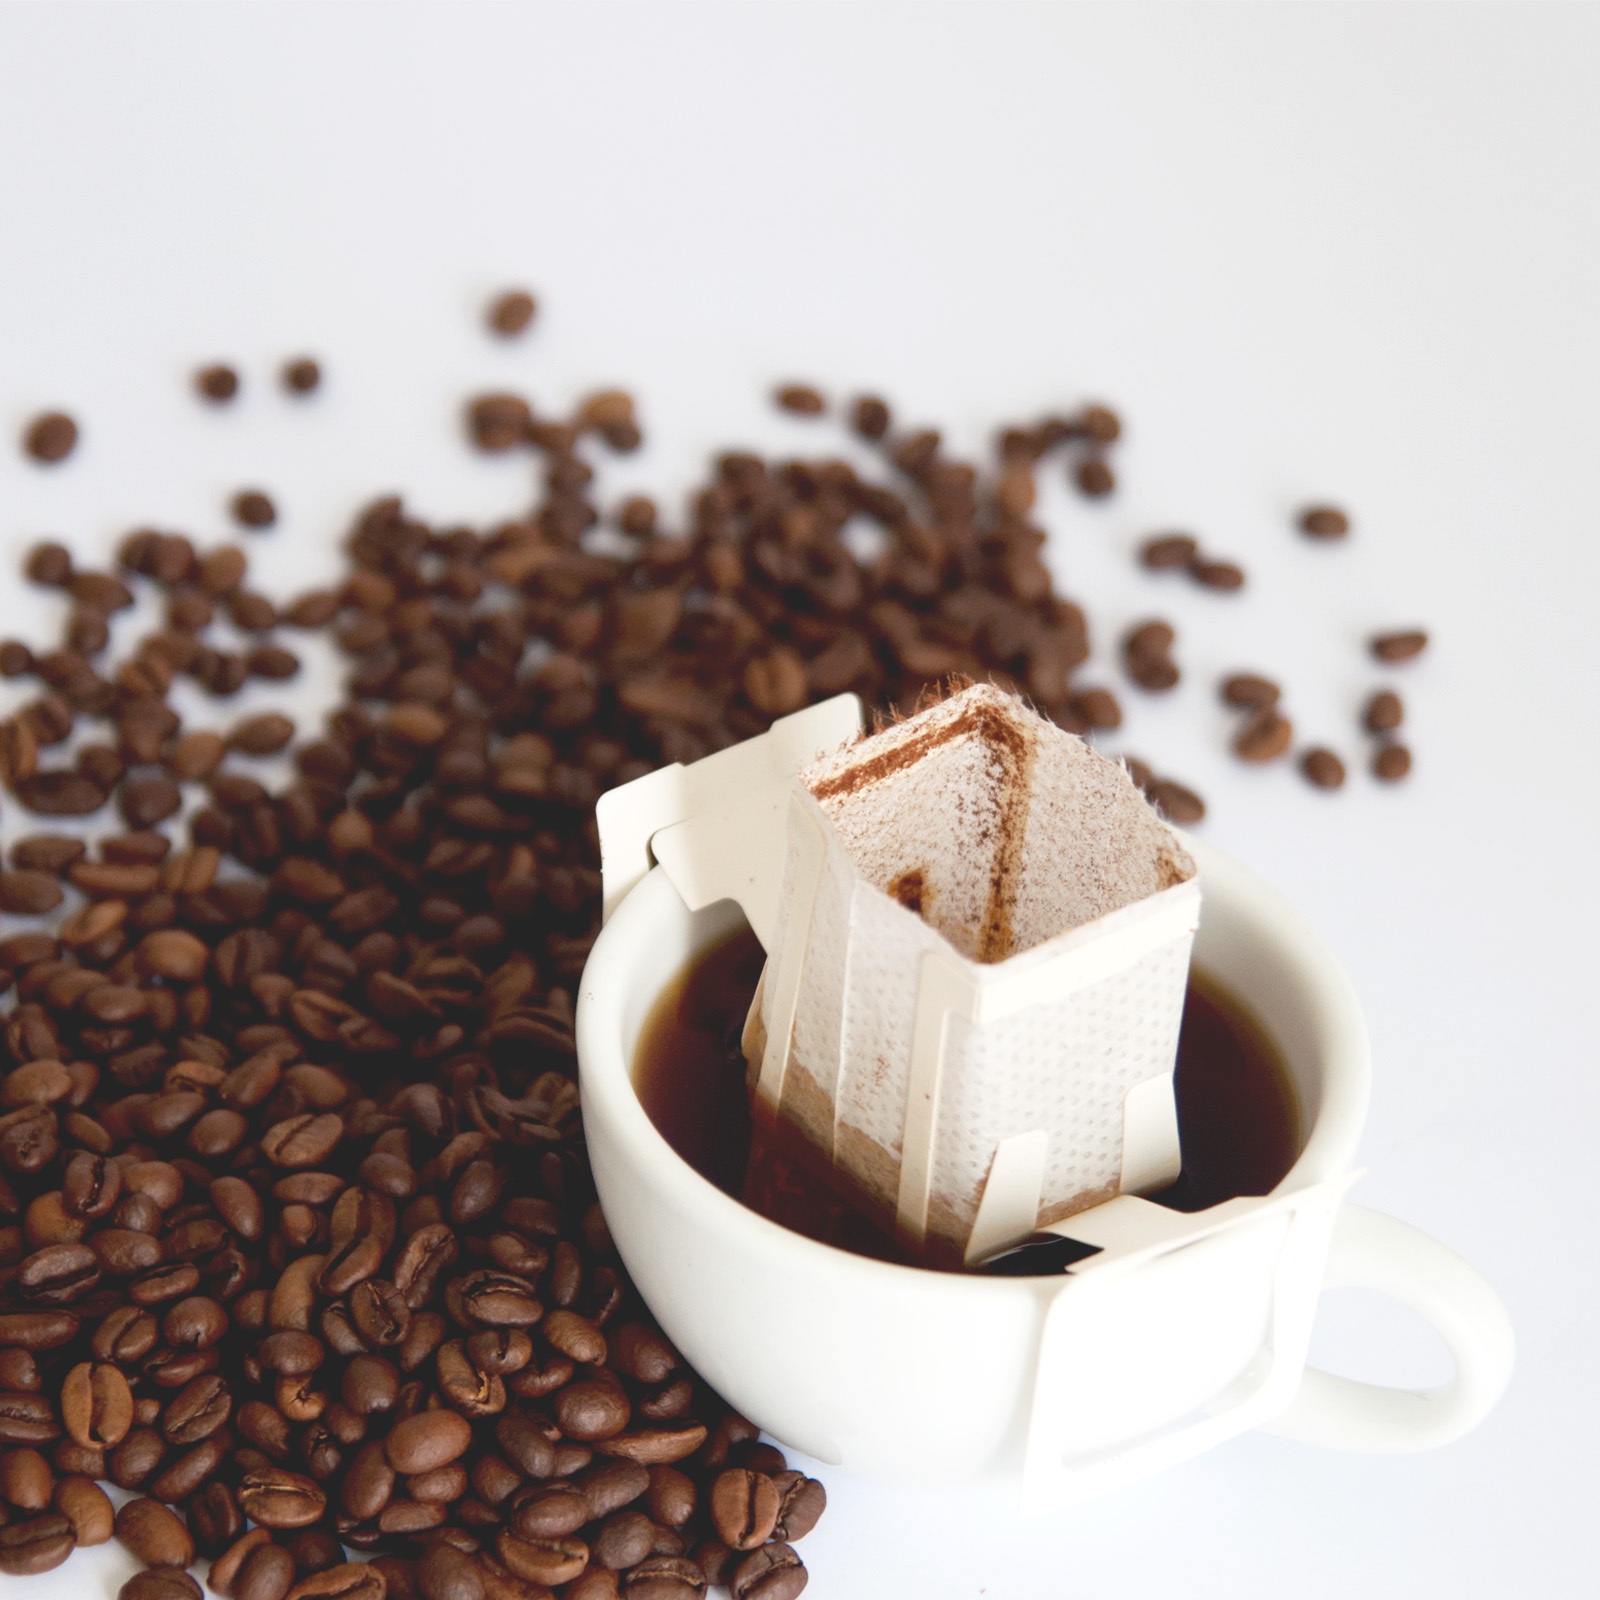 Indonesia Sumatera Aceh Blue Diamond Mandheling Hanging Ear Drip Coffee Ground Coffee OEM Private Label Wholesale